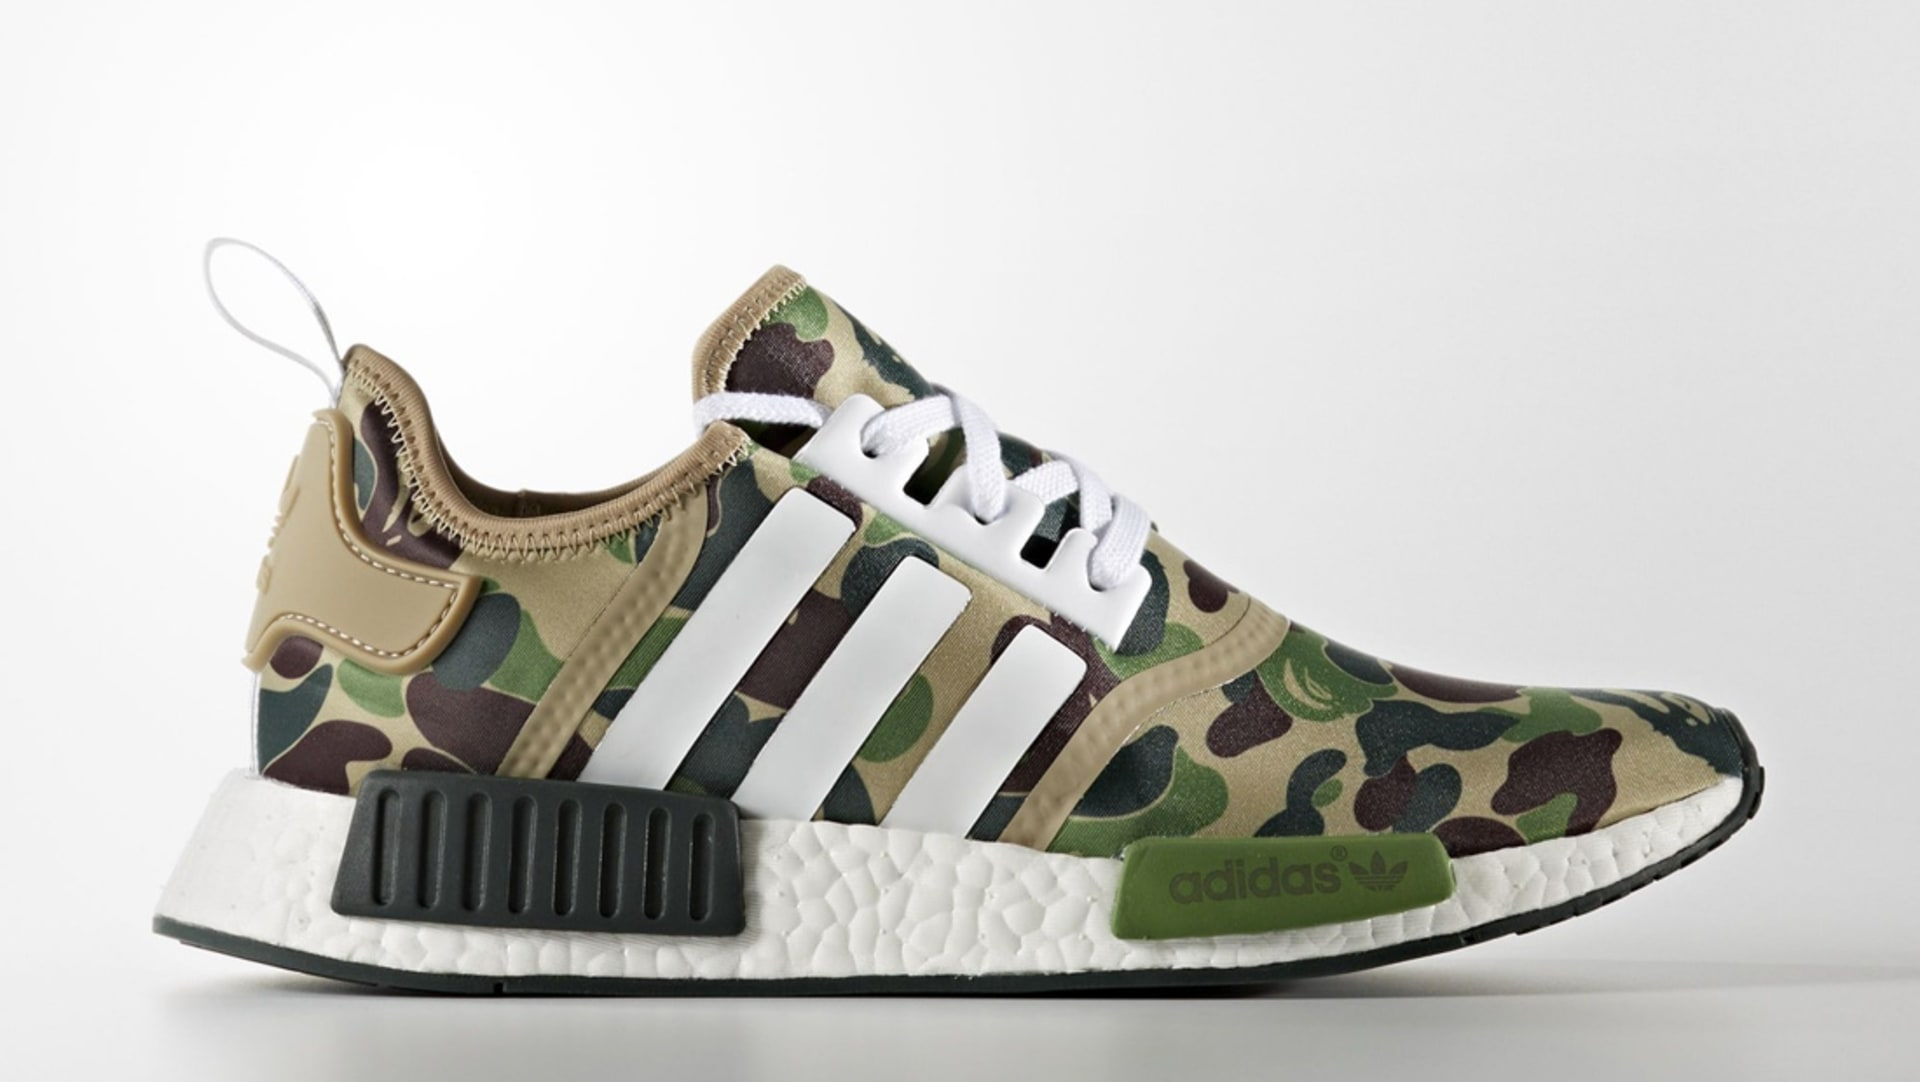 3c106770fcd Adidas NMD x BAPE Olive Camo Sole Collector Release Date Roundup